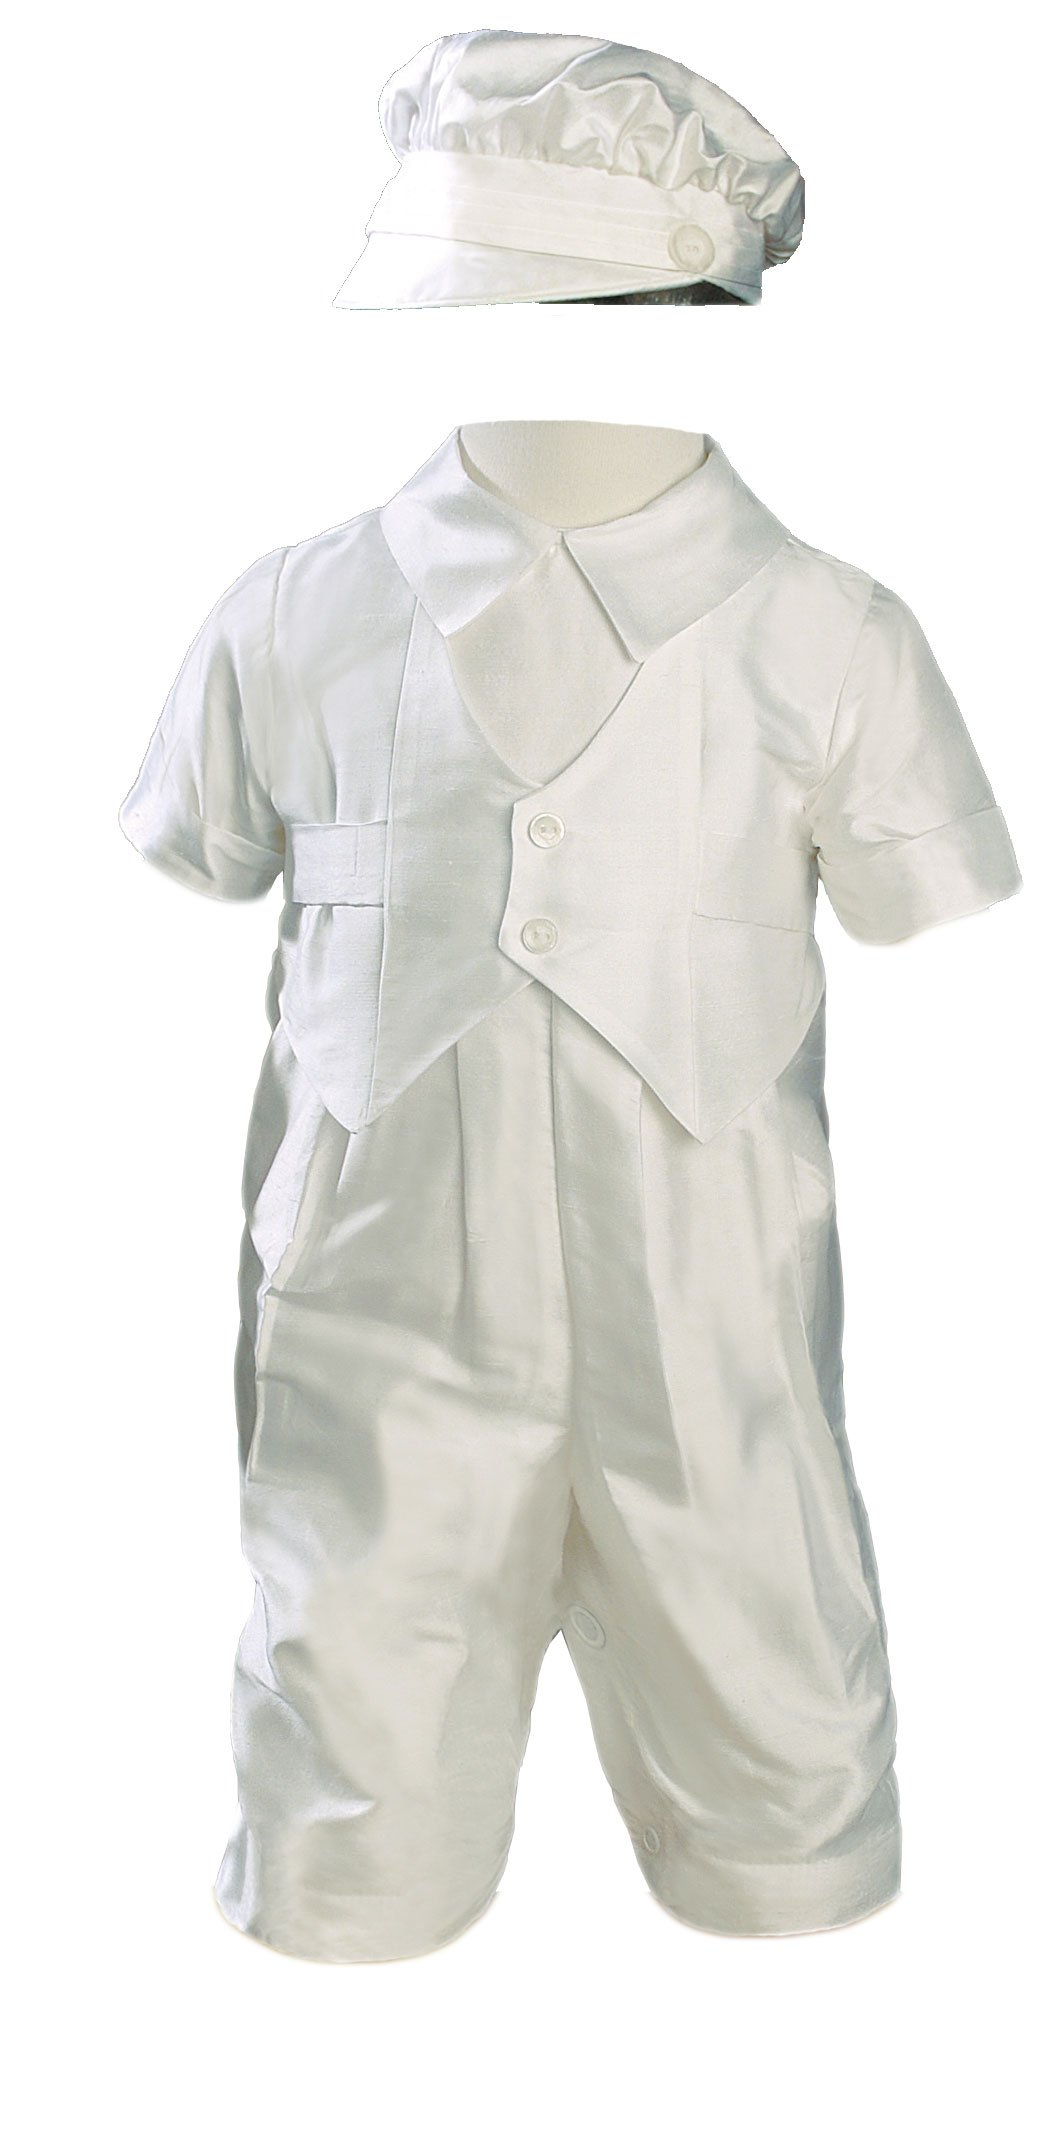 Silk Dupioni Vested Christening Baptism Coverall with Hat, 12 Month